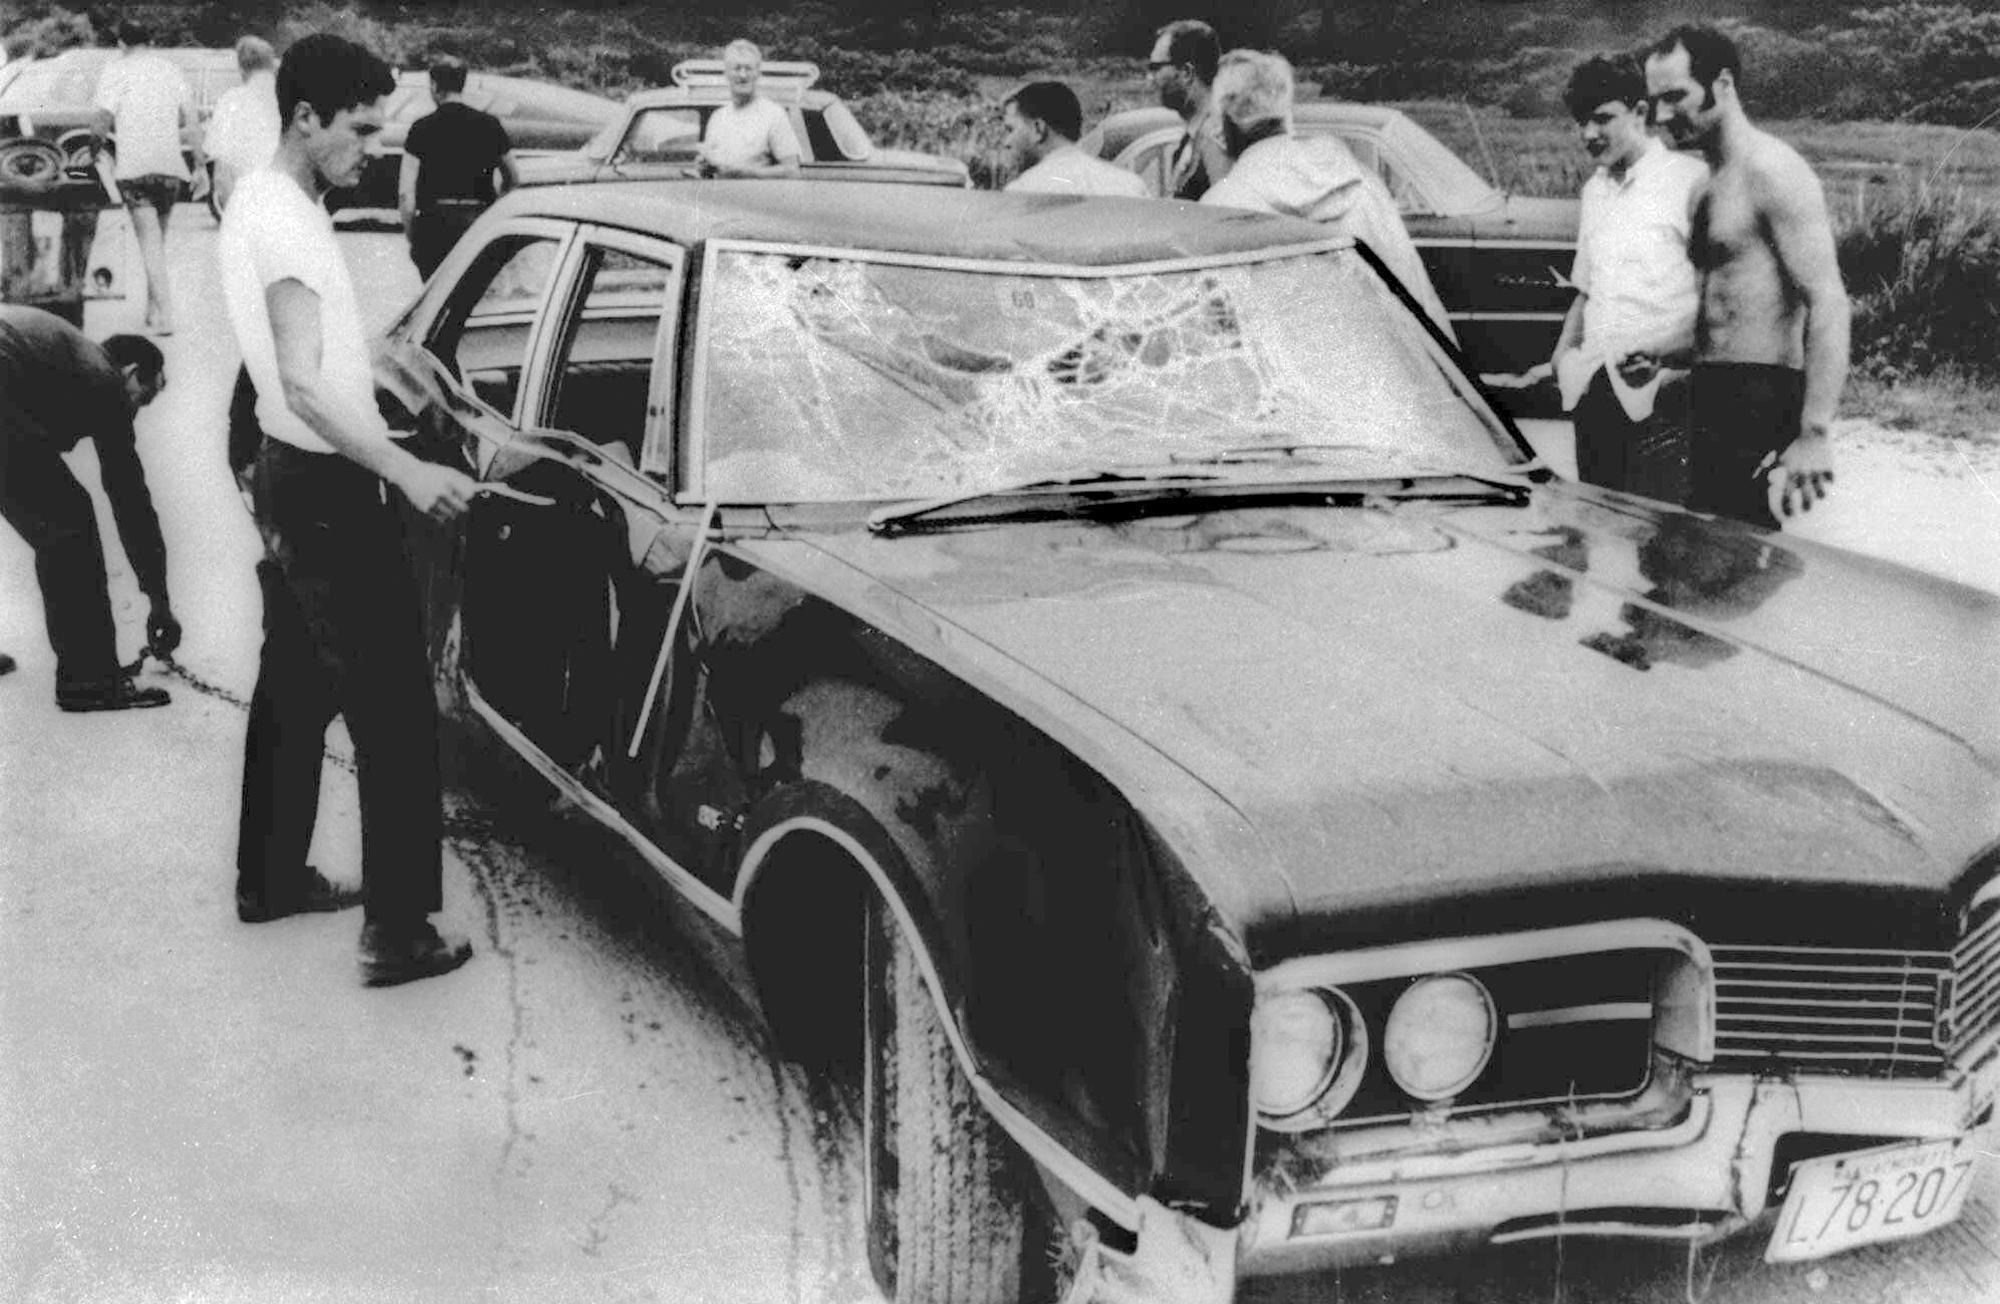 FILE - In this July 18, 1969 file photograph, curious onlookers inspect U.S. Sen. Edward Kennedy's car in Edgartown, Mass. Mary Jo Kopechne drowned after Kennedy drove the car off Dyke Bridge on Chappaquiddick Island, Mass. on July 18, 1969. It's been 50 years since the fateful automobile accident that killed a woman and thwarted Kennedy's presidential aspirations. (AP Photo, File)